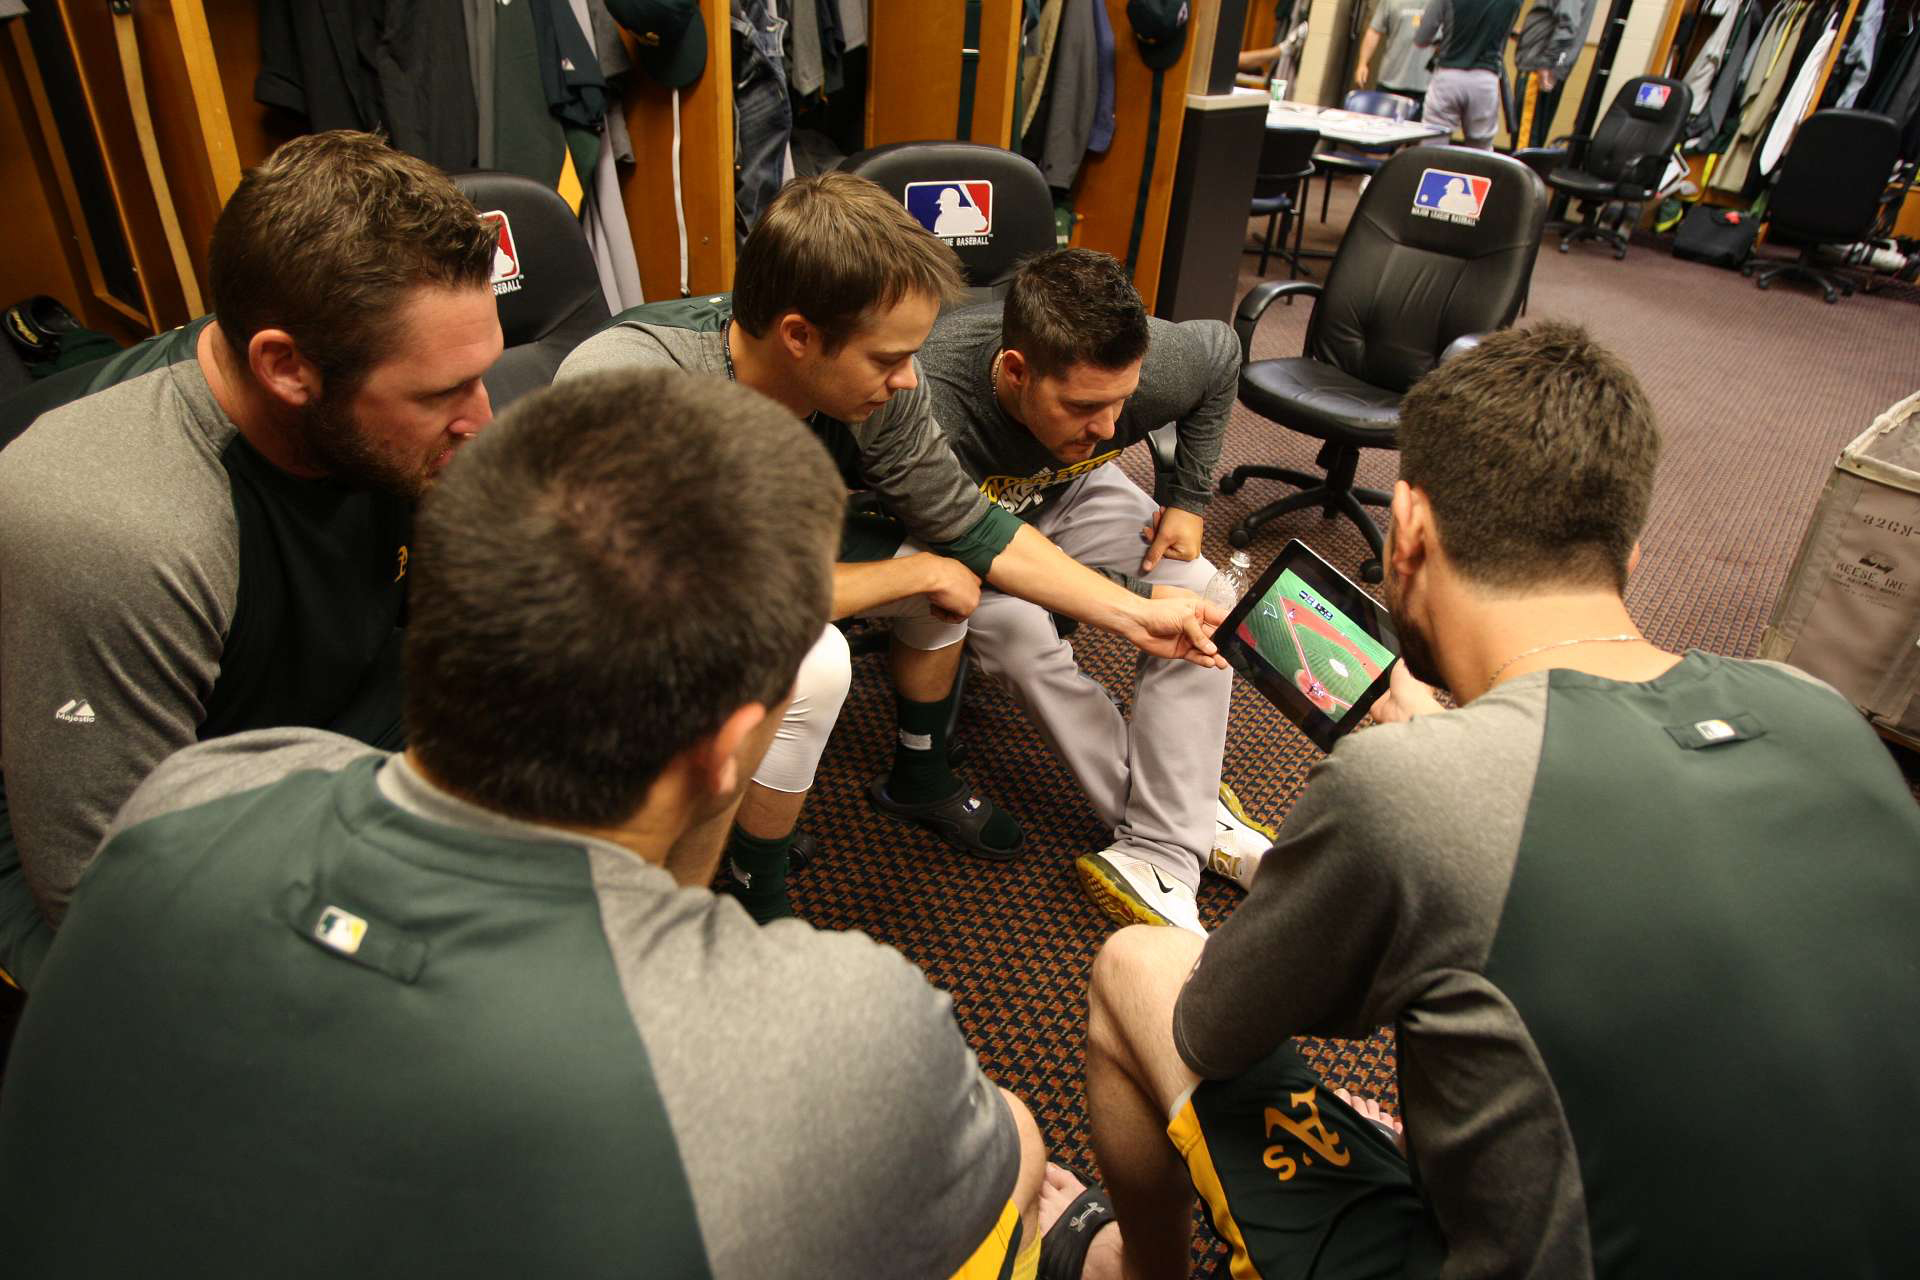 Members of the Oakland Athletics pitching staff watch highlights of the Athletics on an iPad in the clubhouse prior to the game against the Detroit Tigers at Comerica Park on October 6, 2012 in Detroit, Michigan.